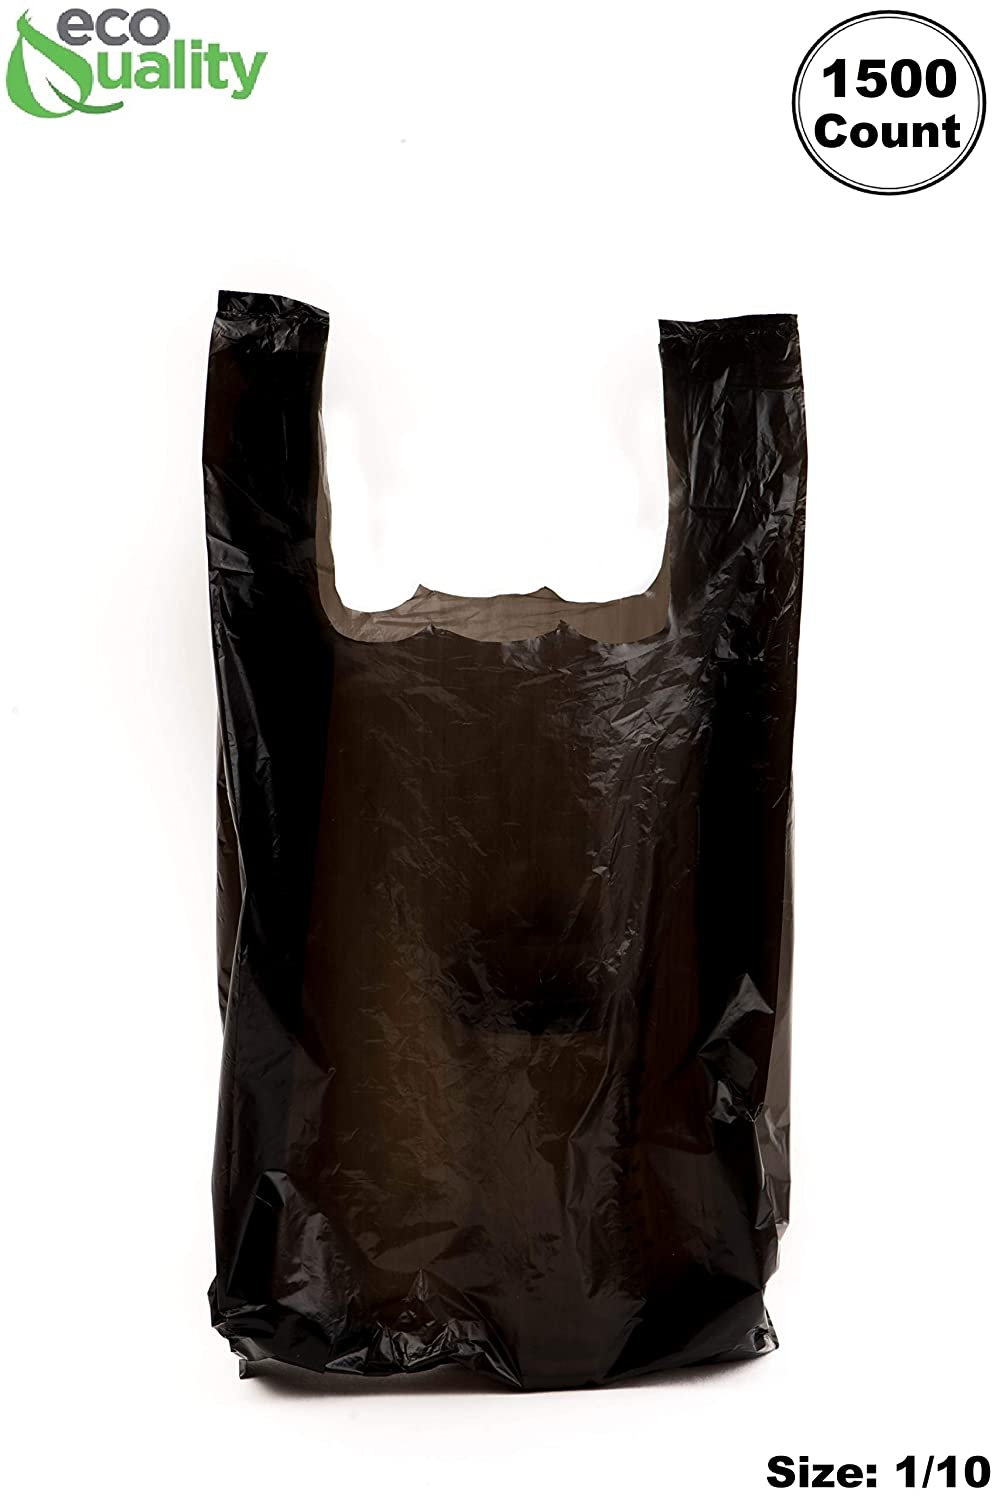 EcoQuality Plastic Black T-Shirt Bags 1500ct, 1/10 Shopping Bags, Grocery Bags, Poly Bags, Multi-Use, Small Size, Reusable Carry Out Bags (8x4x16 in.) (13 Micron)